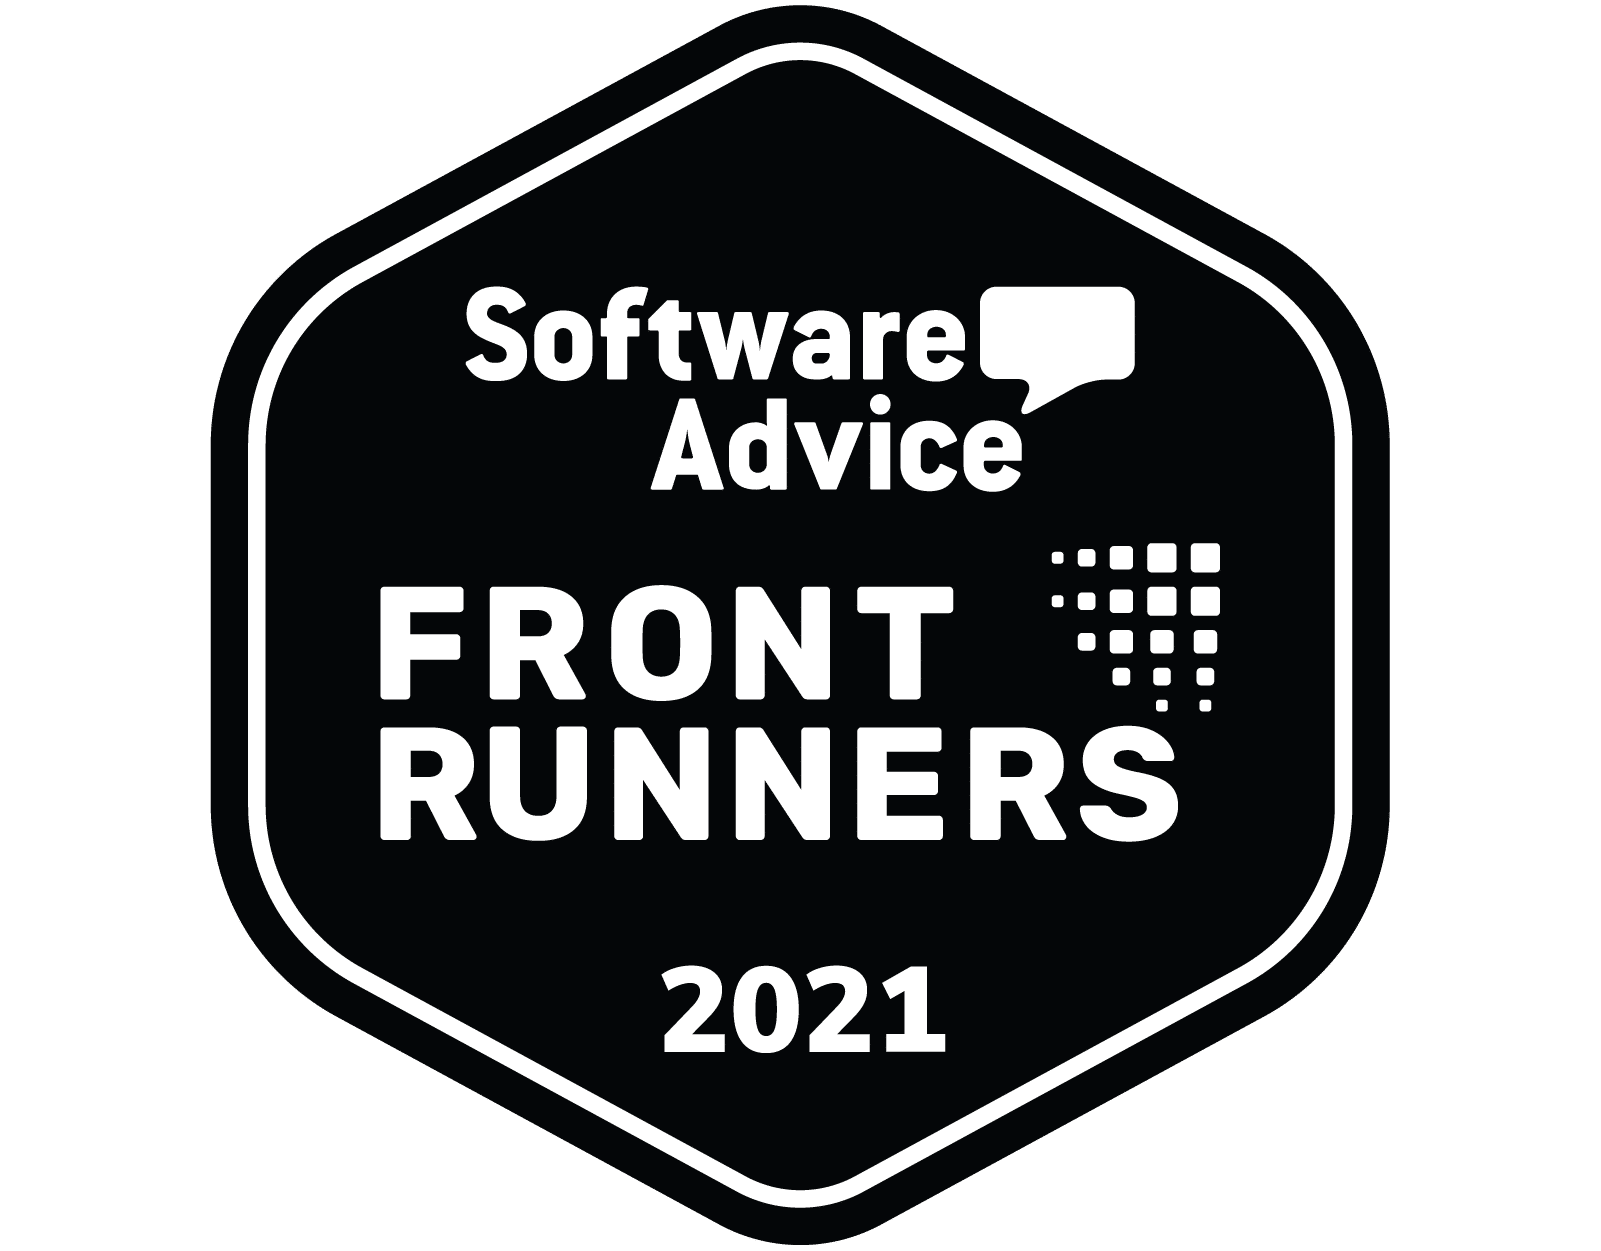 2021 Software Advice FrontRunners for Warehouse Management Software